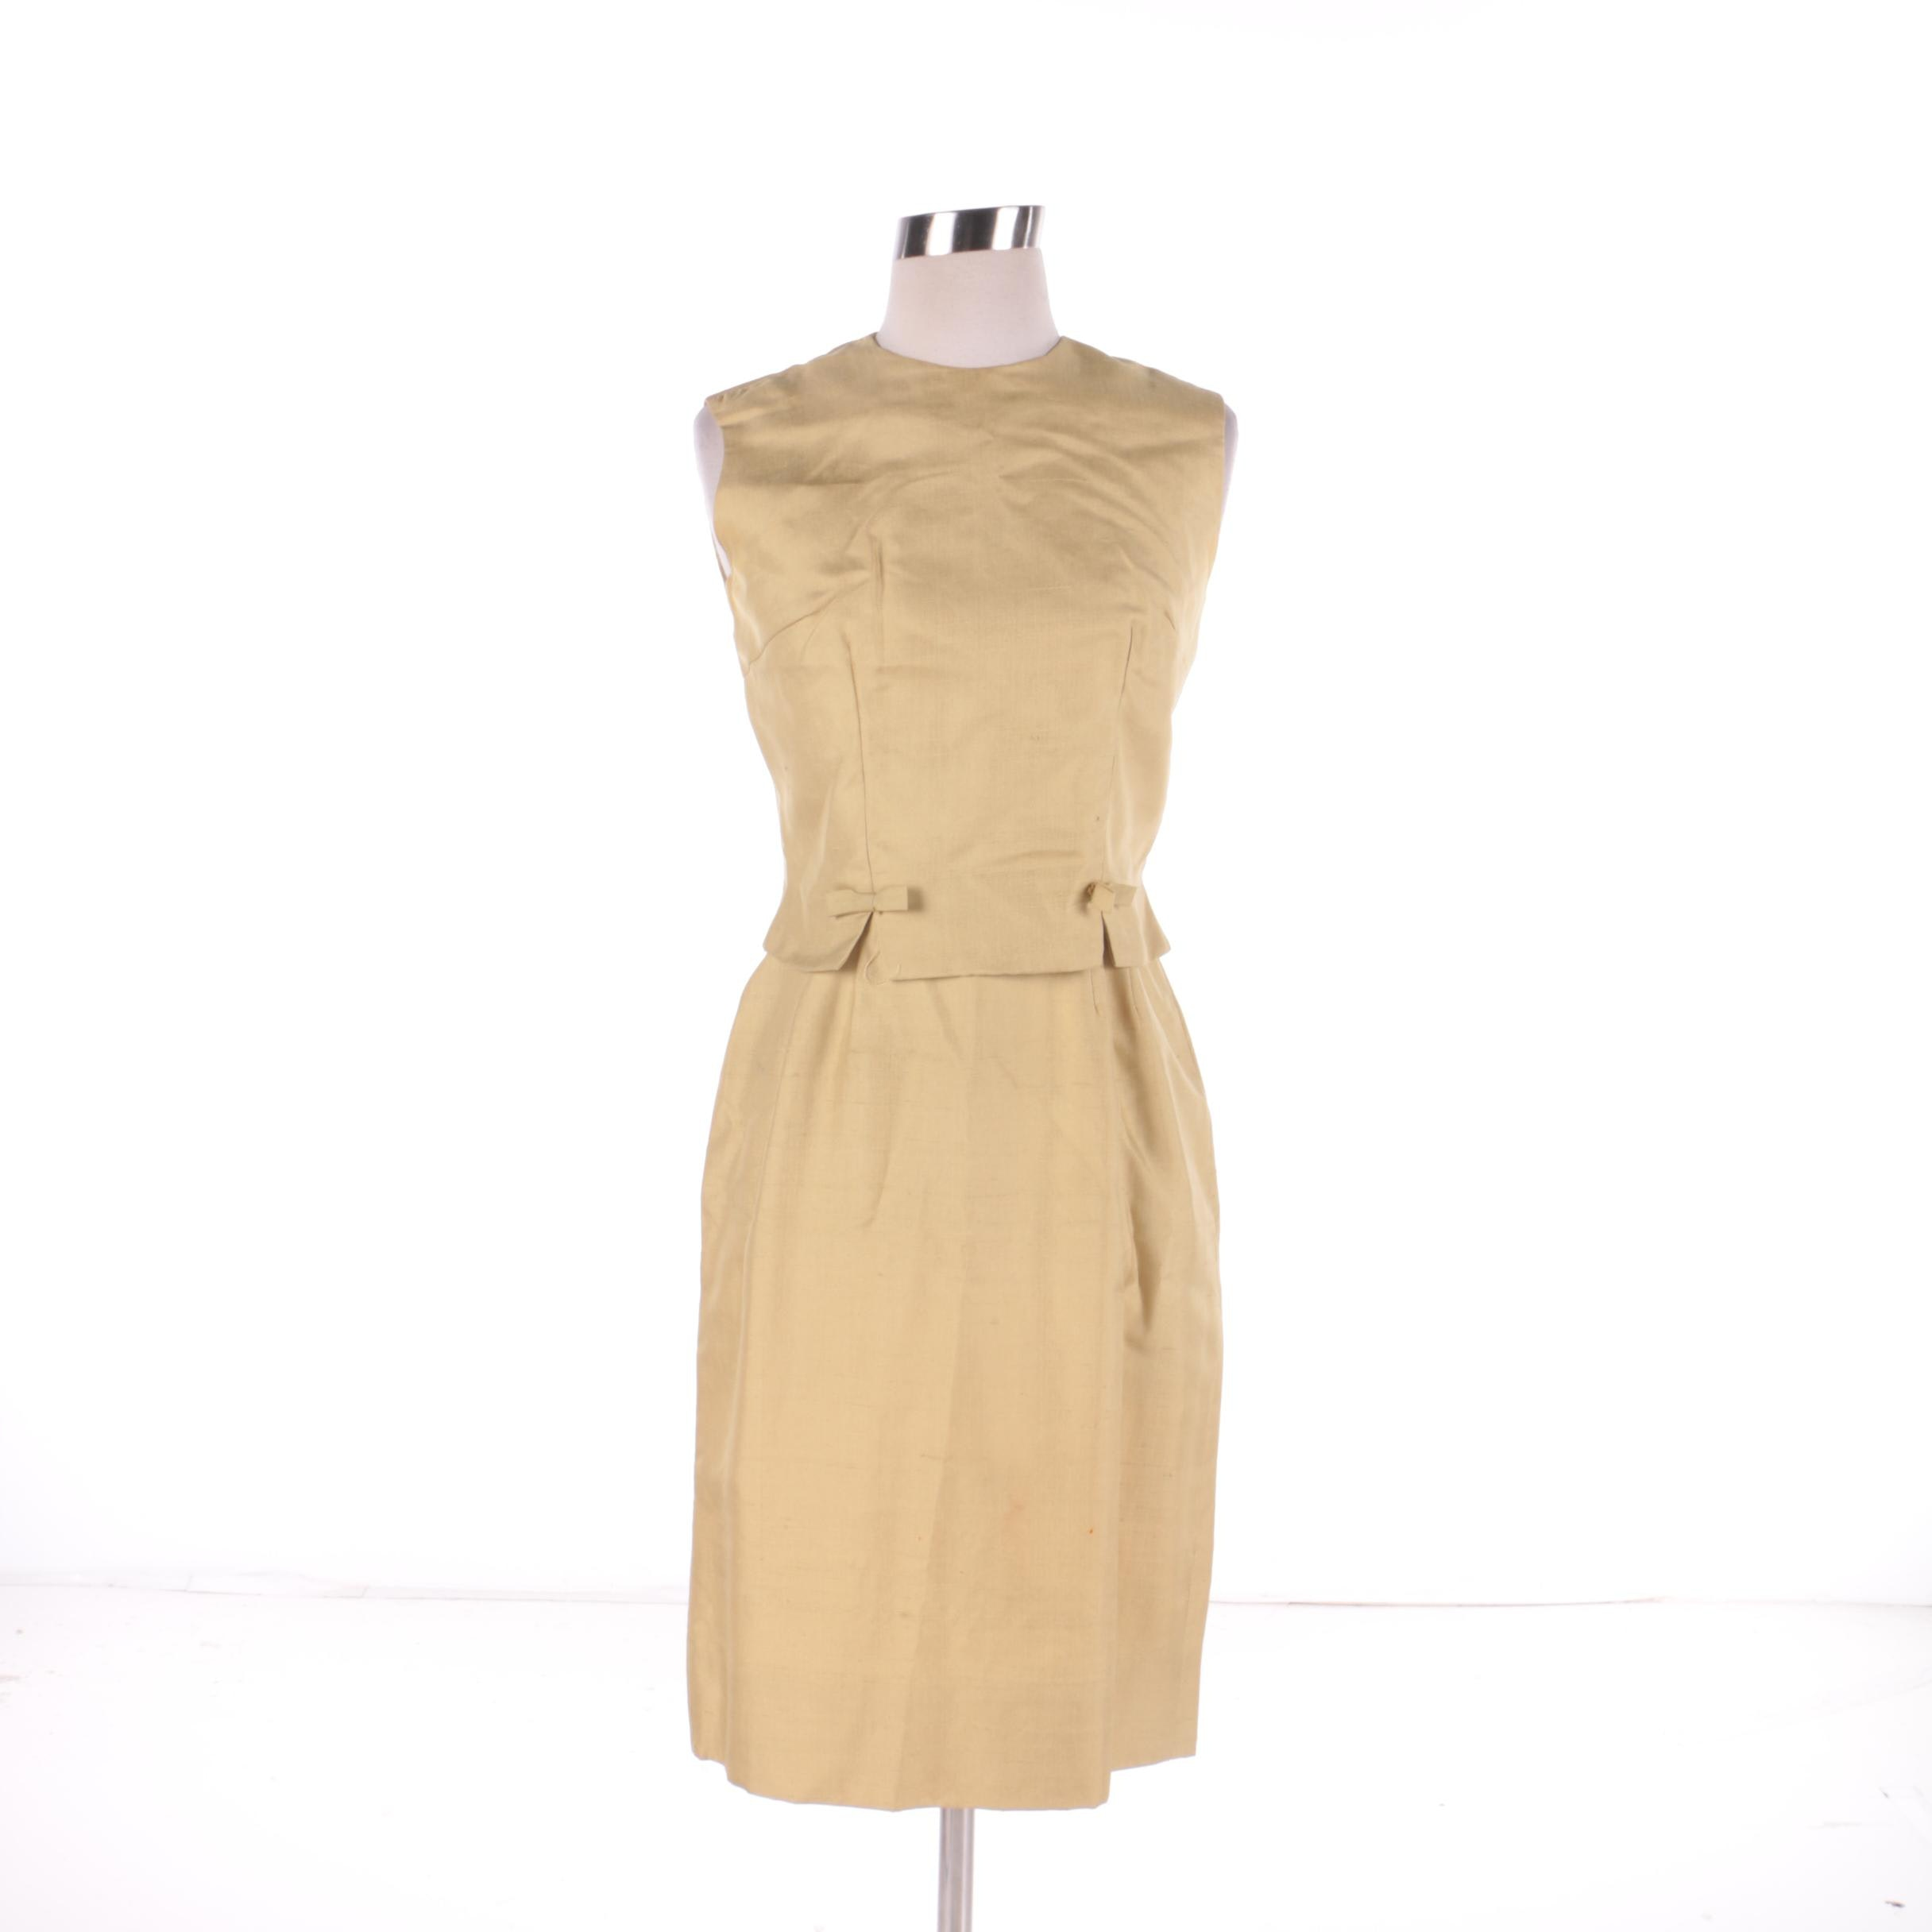 Women's Circa 1960s Vintage Two-Piece Raw Silk Dress